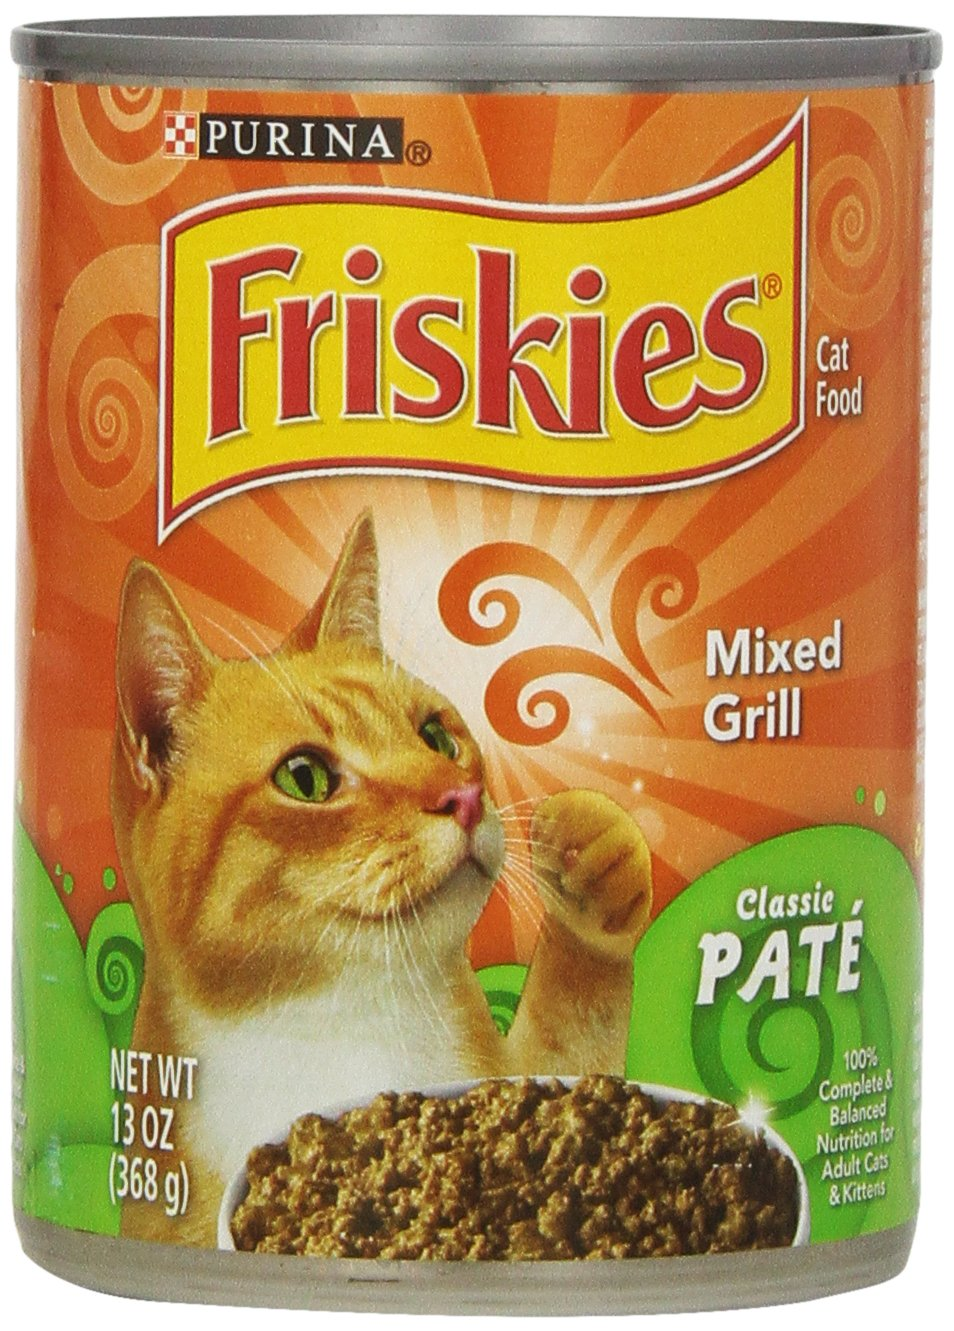 Fiskies Wet Cat Food Classic Pate